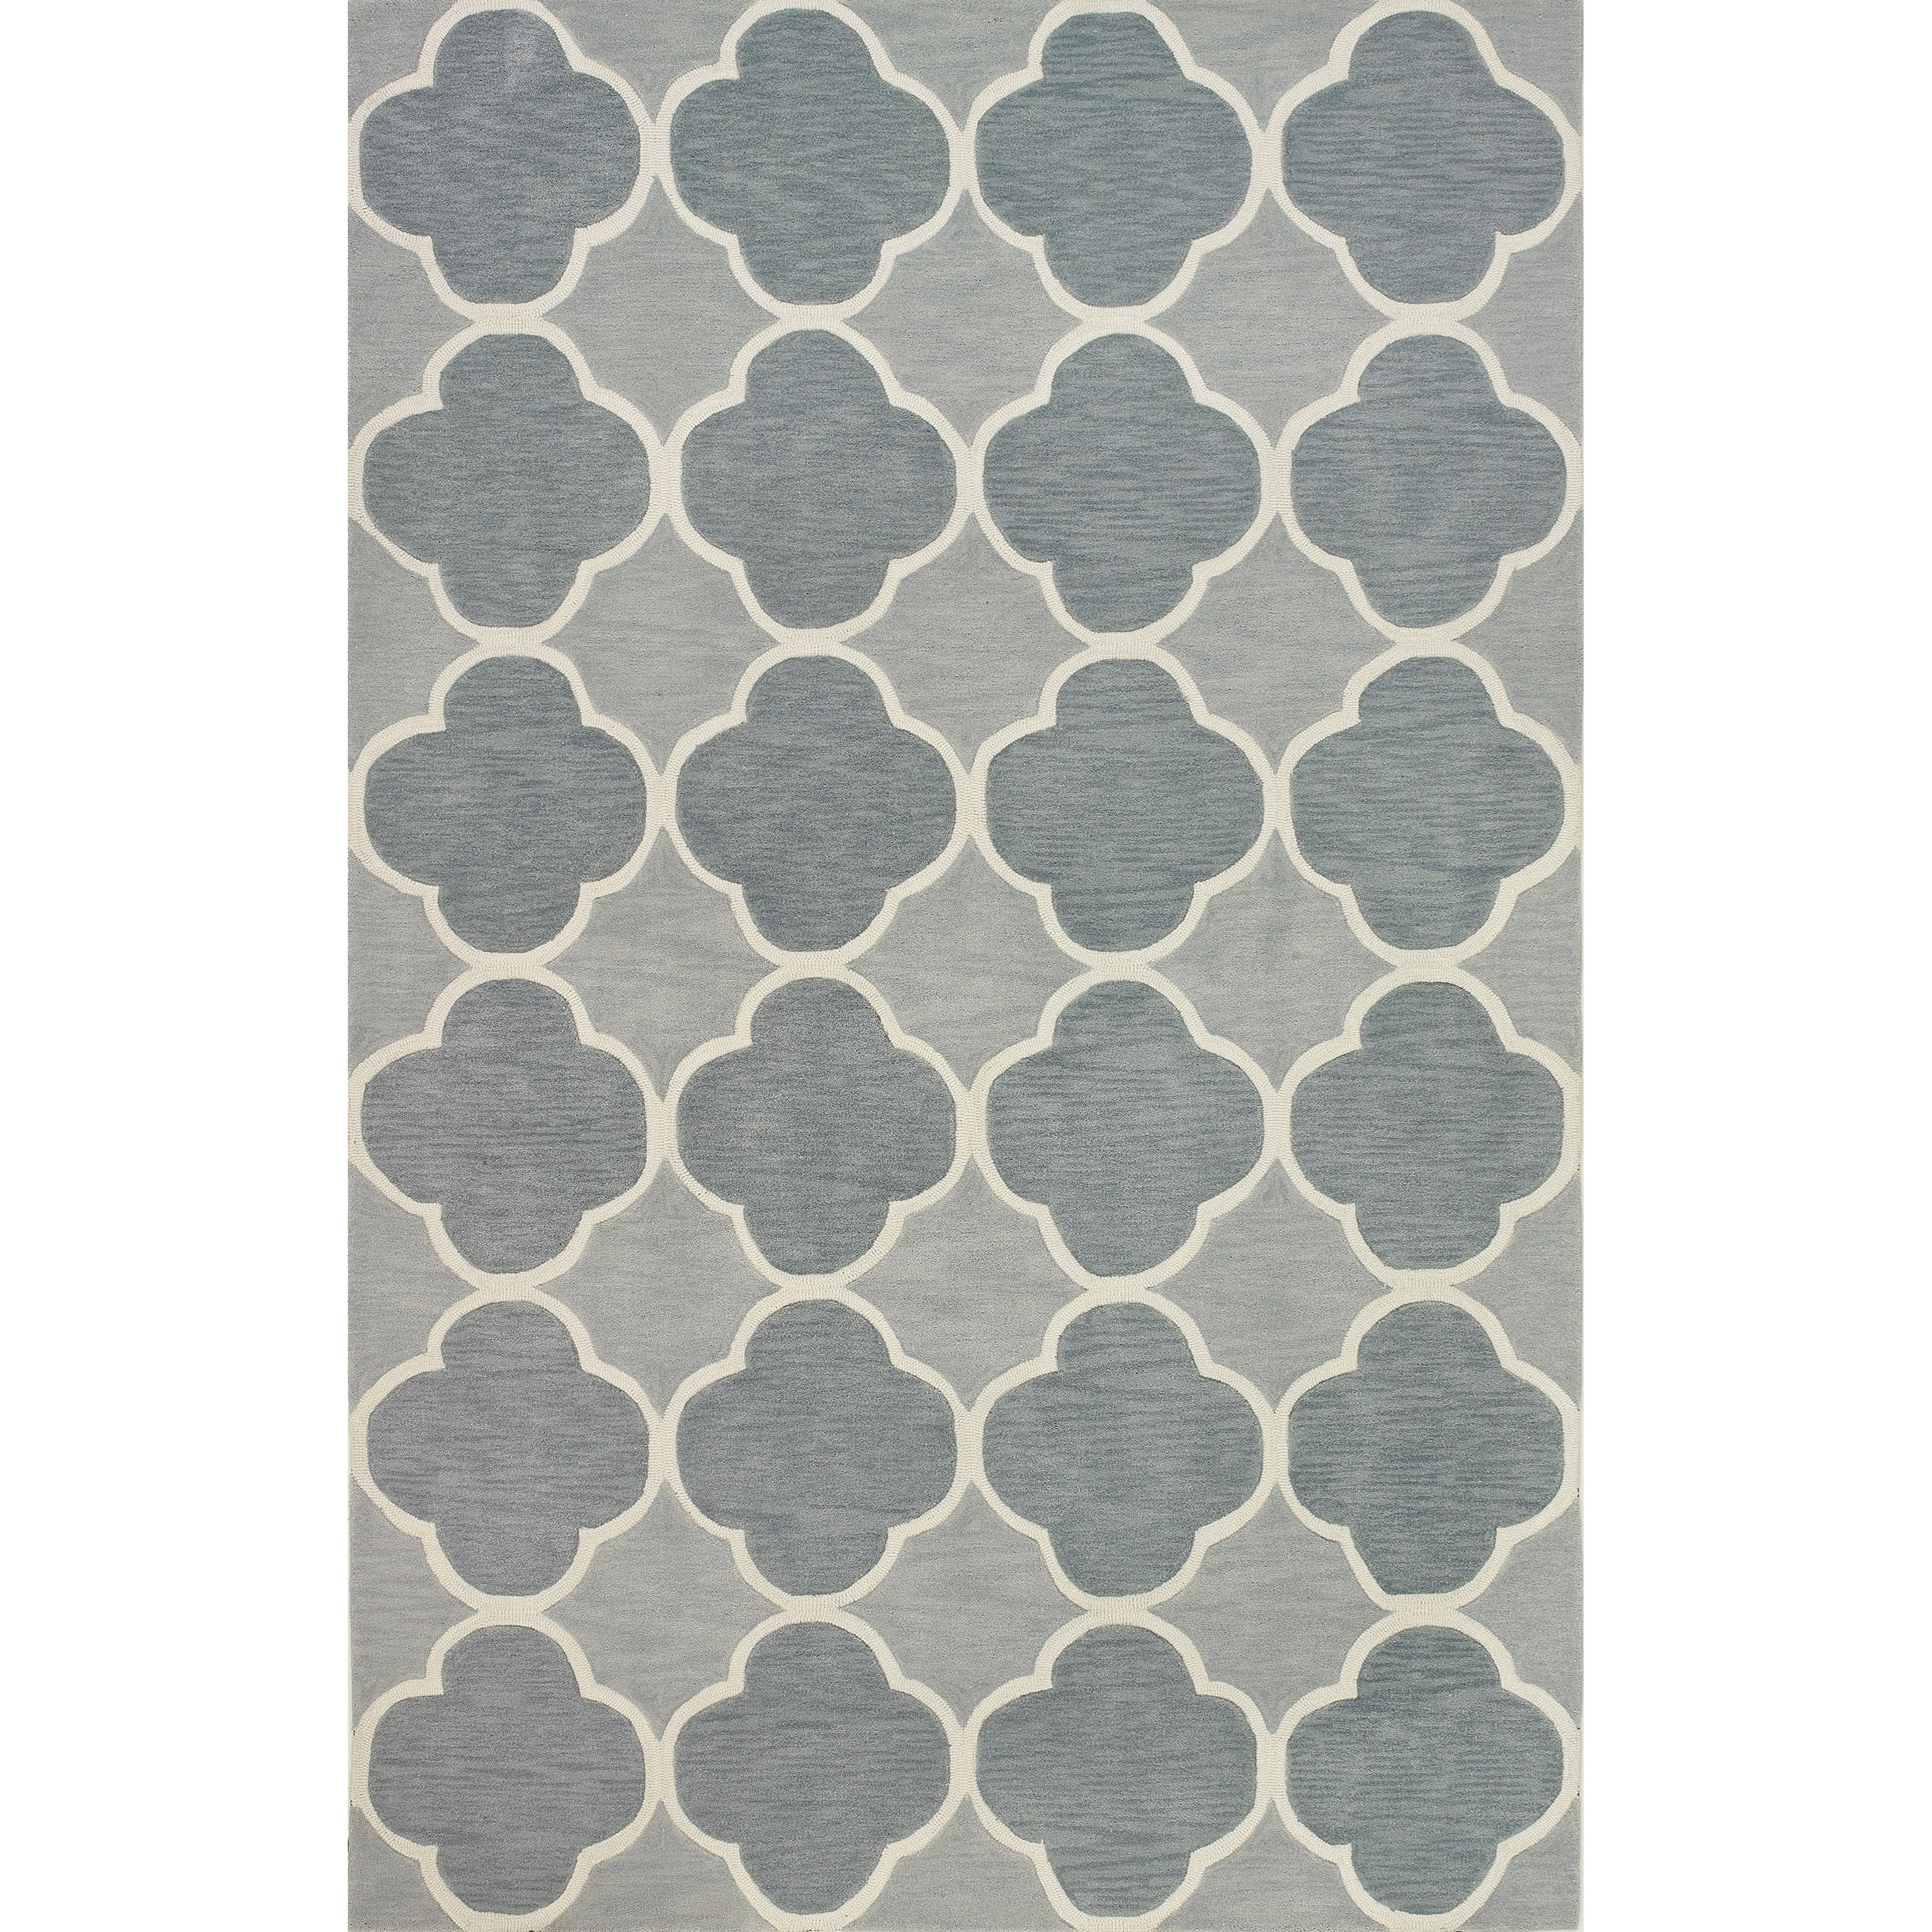 Dalyn Infinity Sky 8'X10' Rug - Item Number: IF2SY8X10